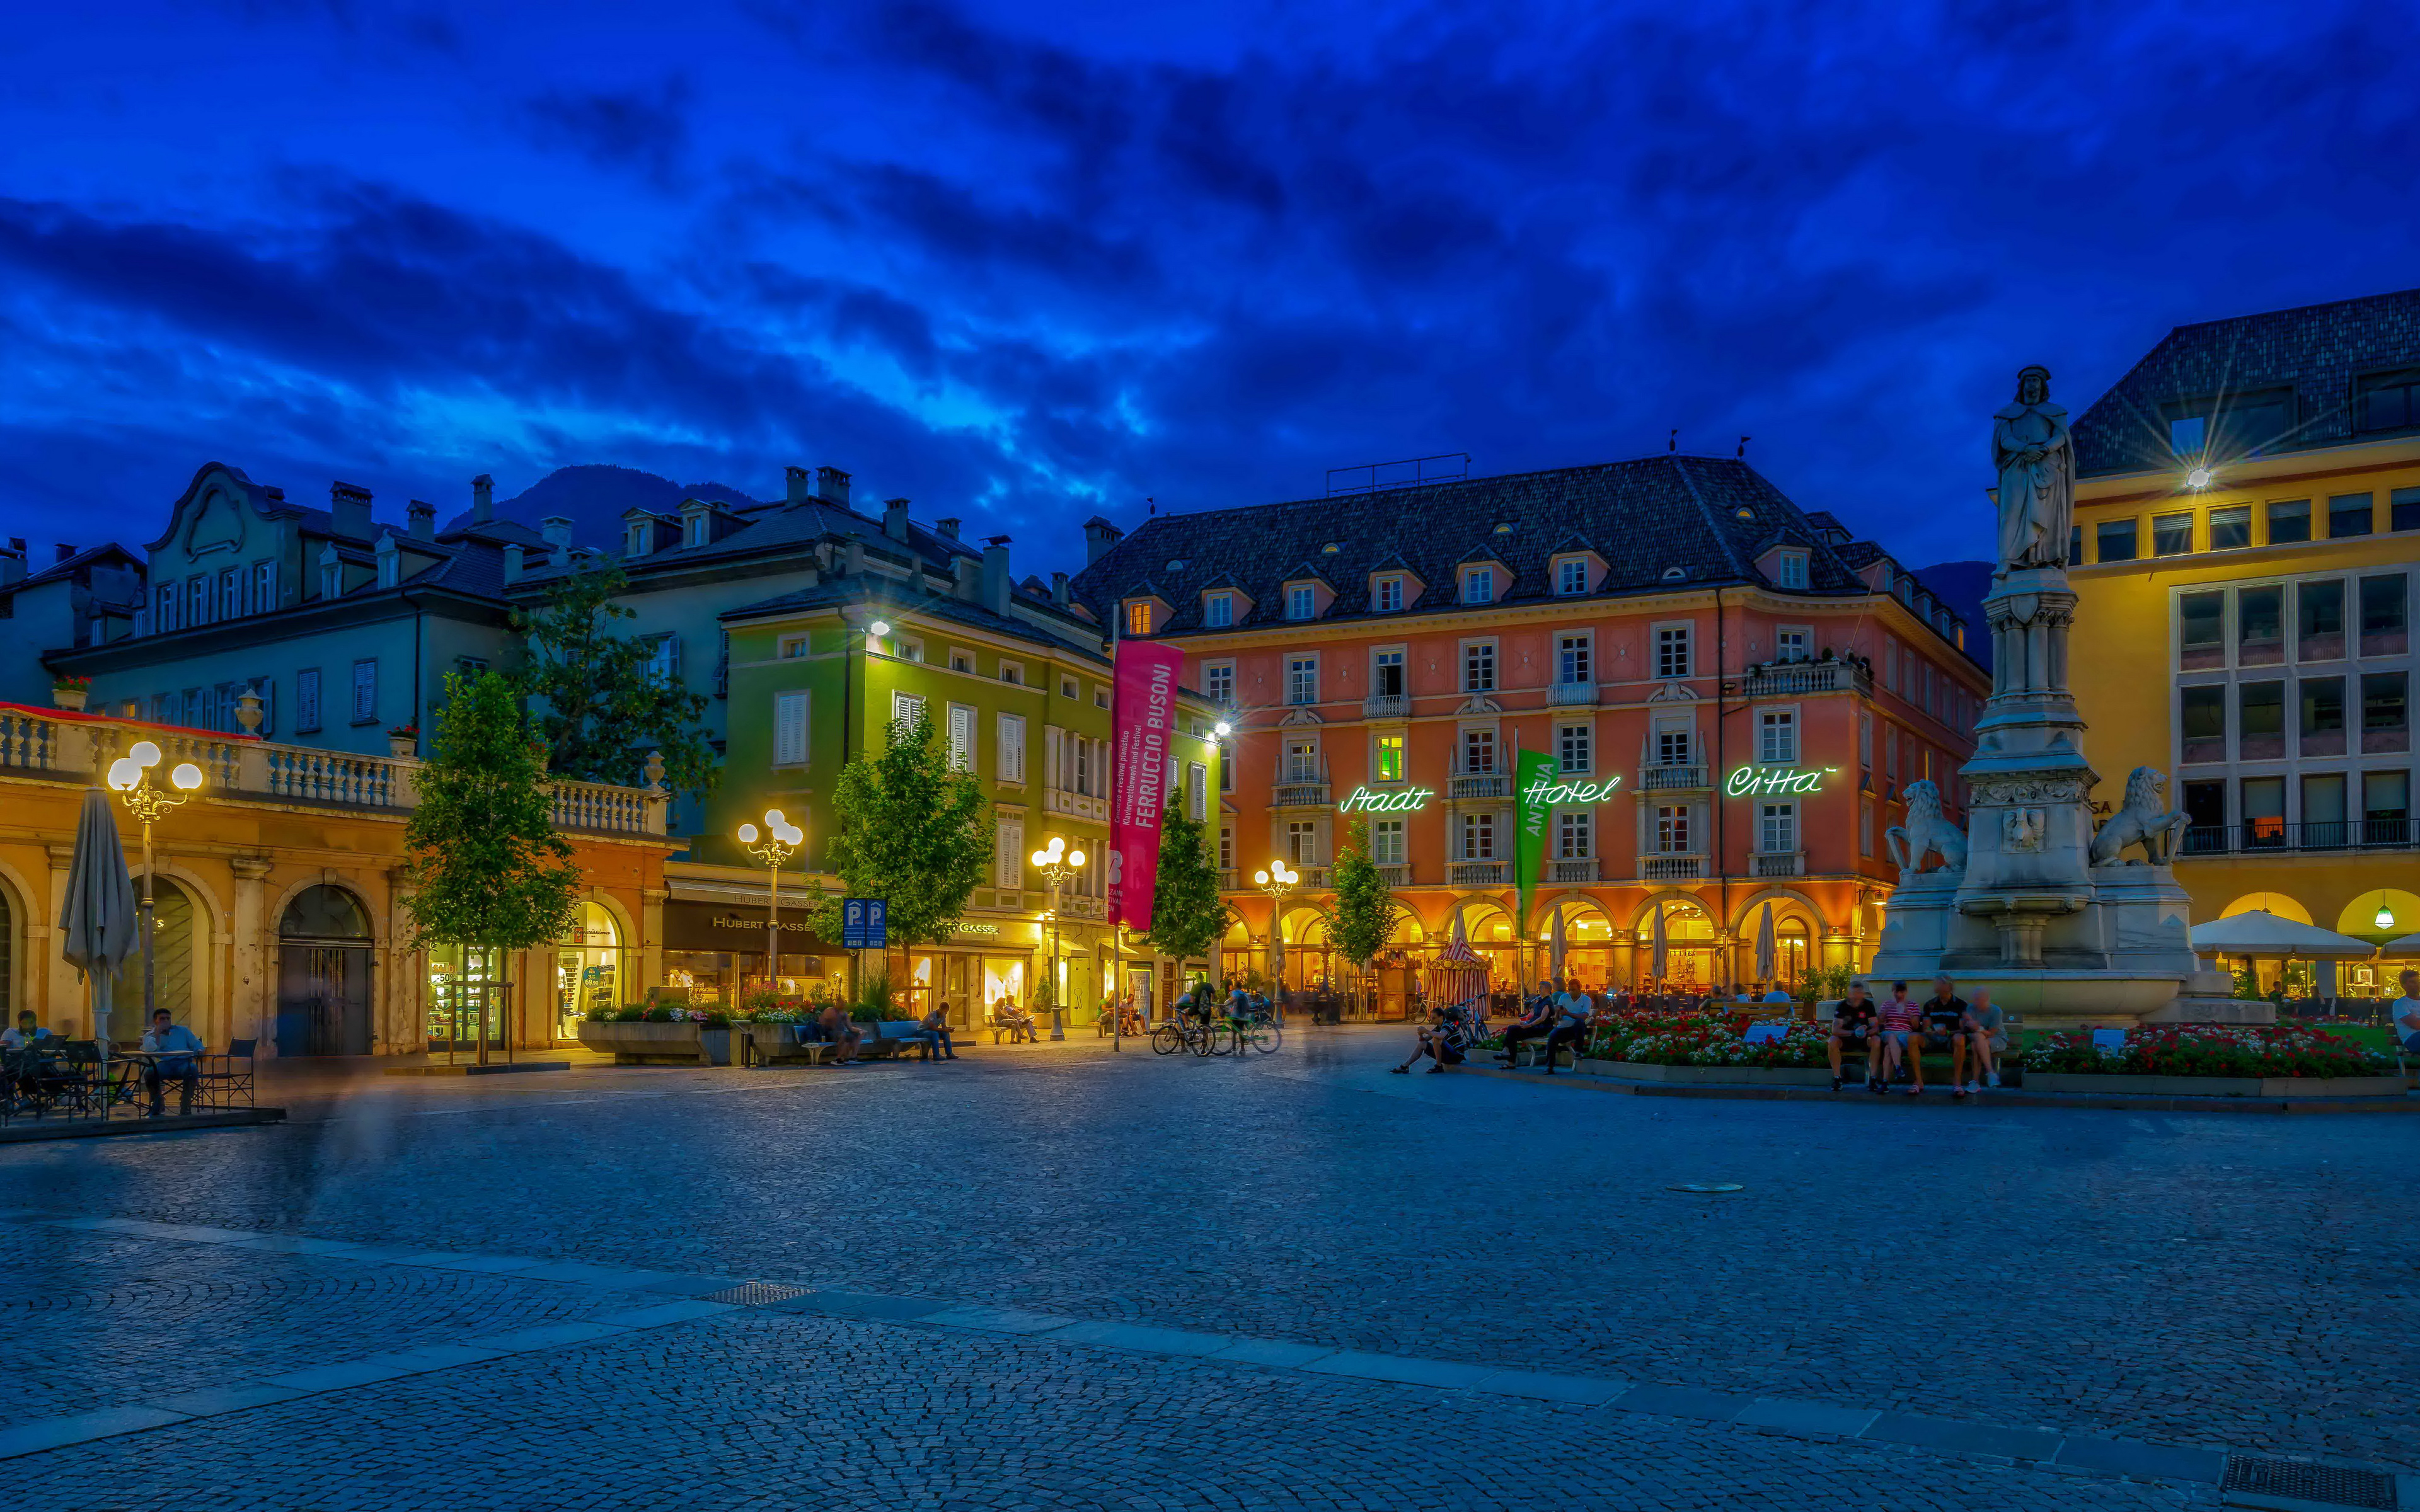 Desktop Wallpapers Italy Monuments Town square Bolzano 3840x2400 3840x2400